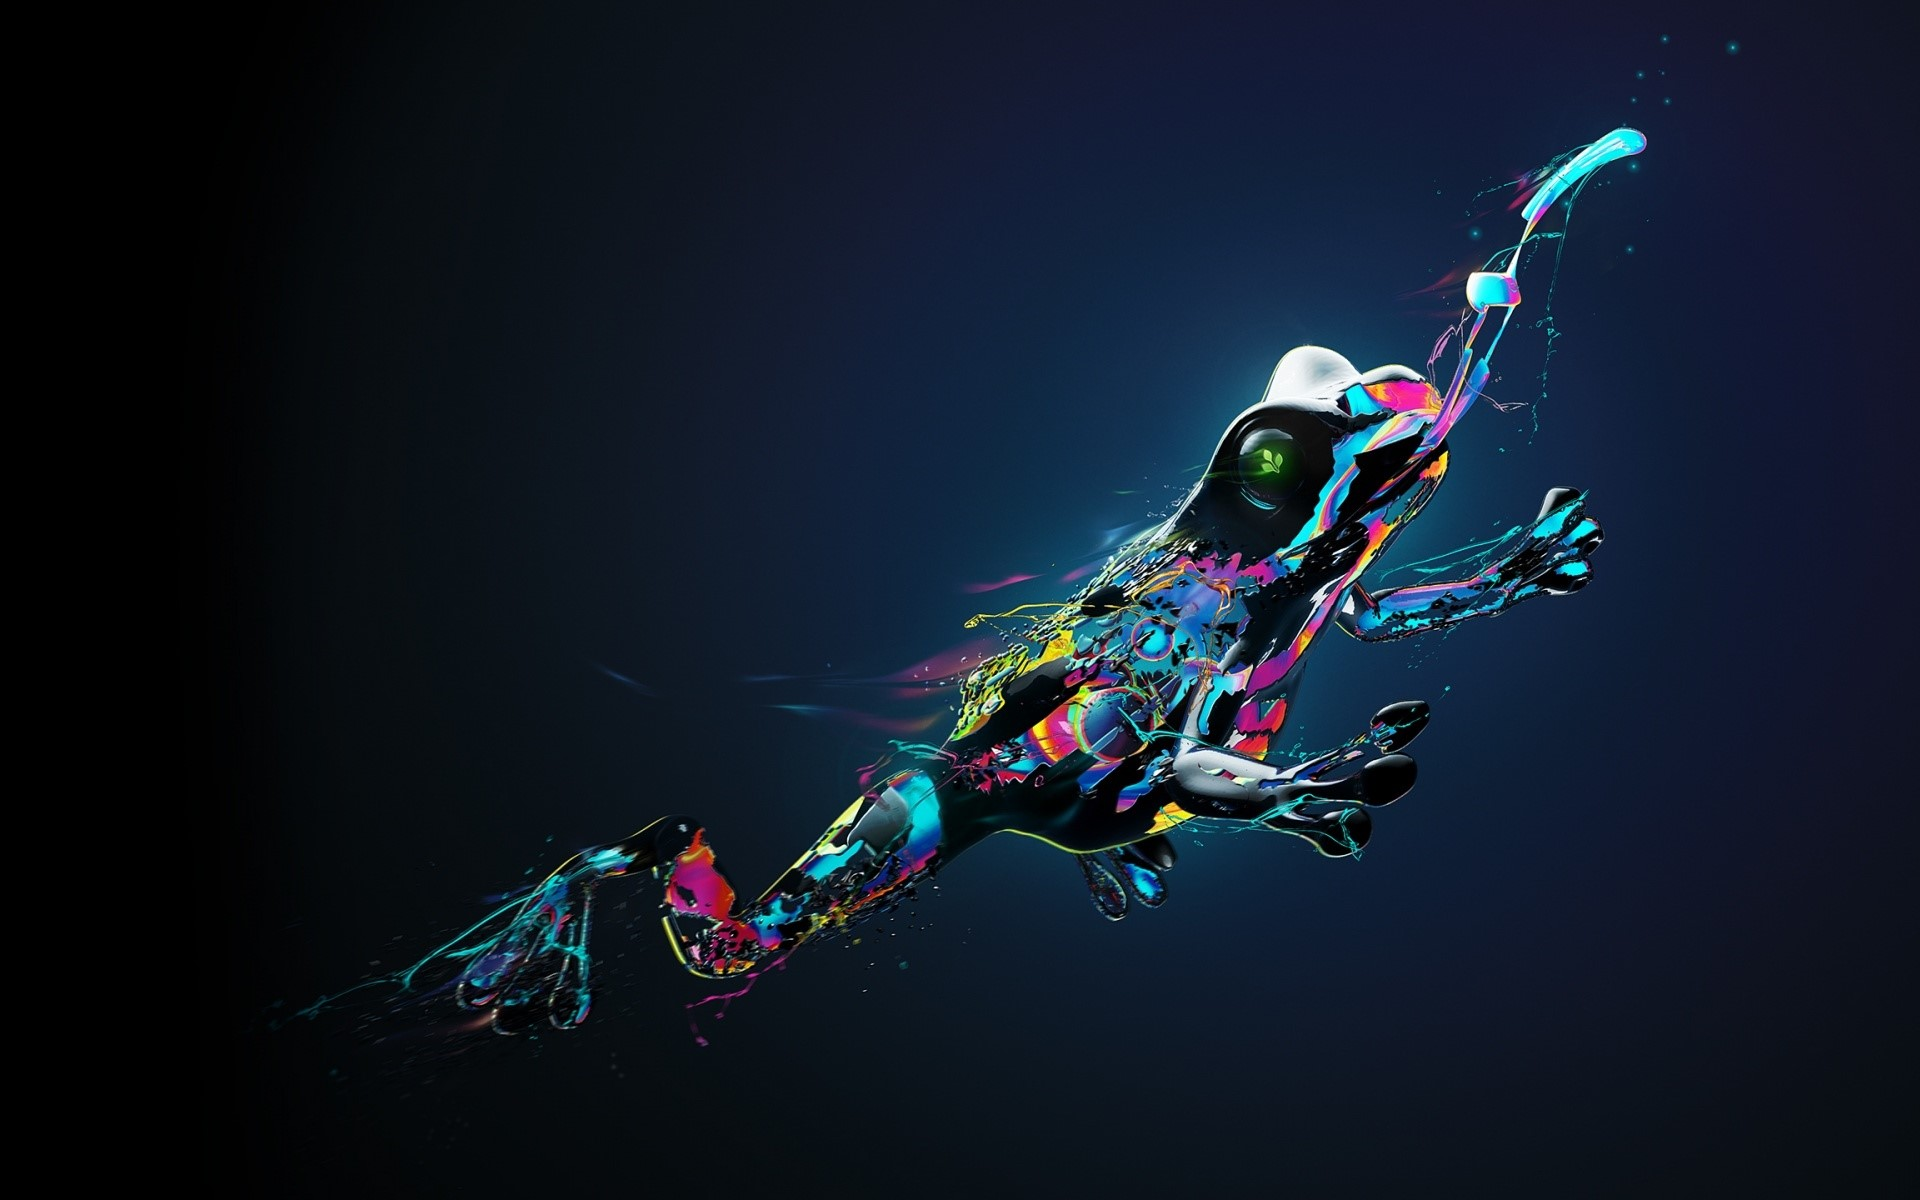 Wallpaper Frog made of colors